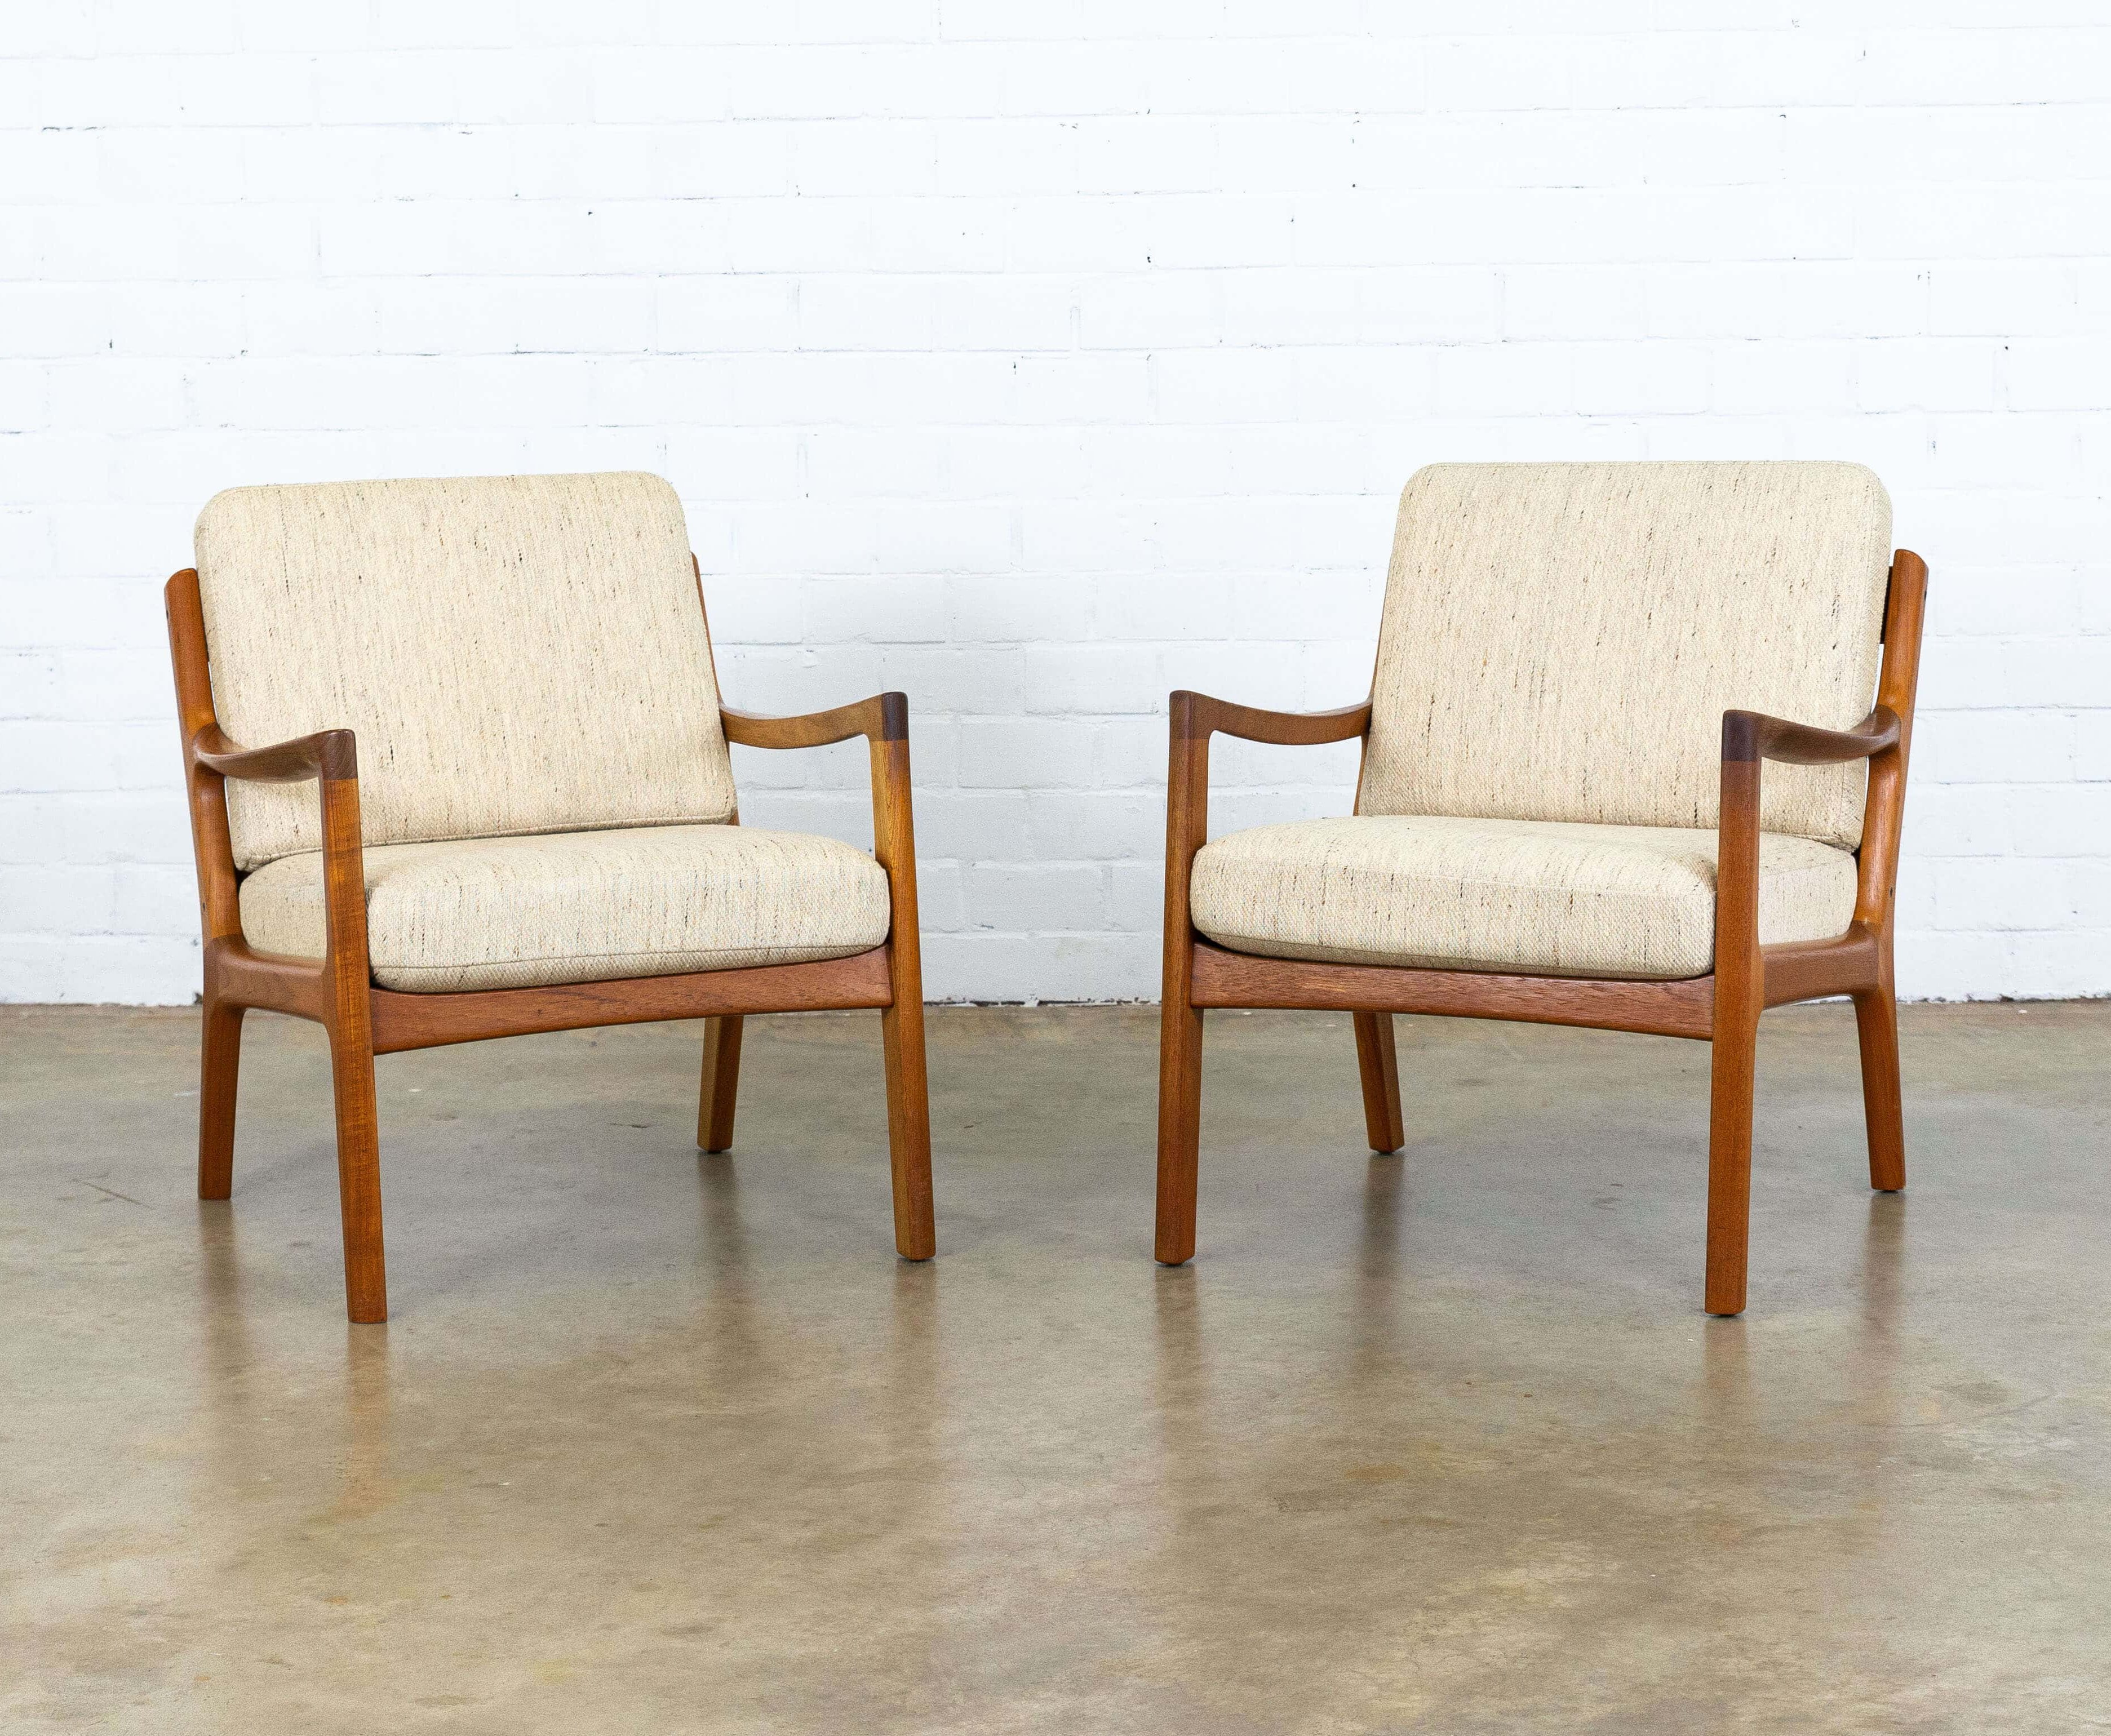 Brilliant Pair Of Senator Arm Chairs By Ole Wanscher For France Son 1950S Gmtry Best Dining Table And Chair Ideas Images Gmtryco